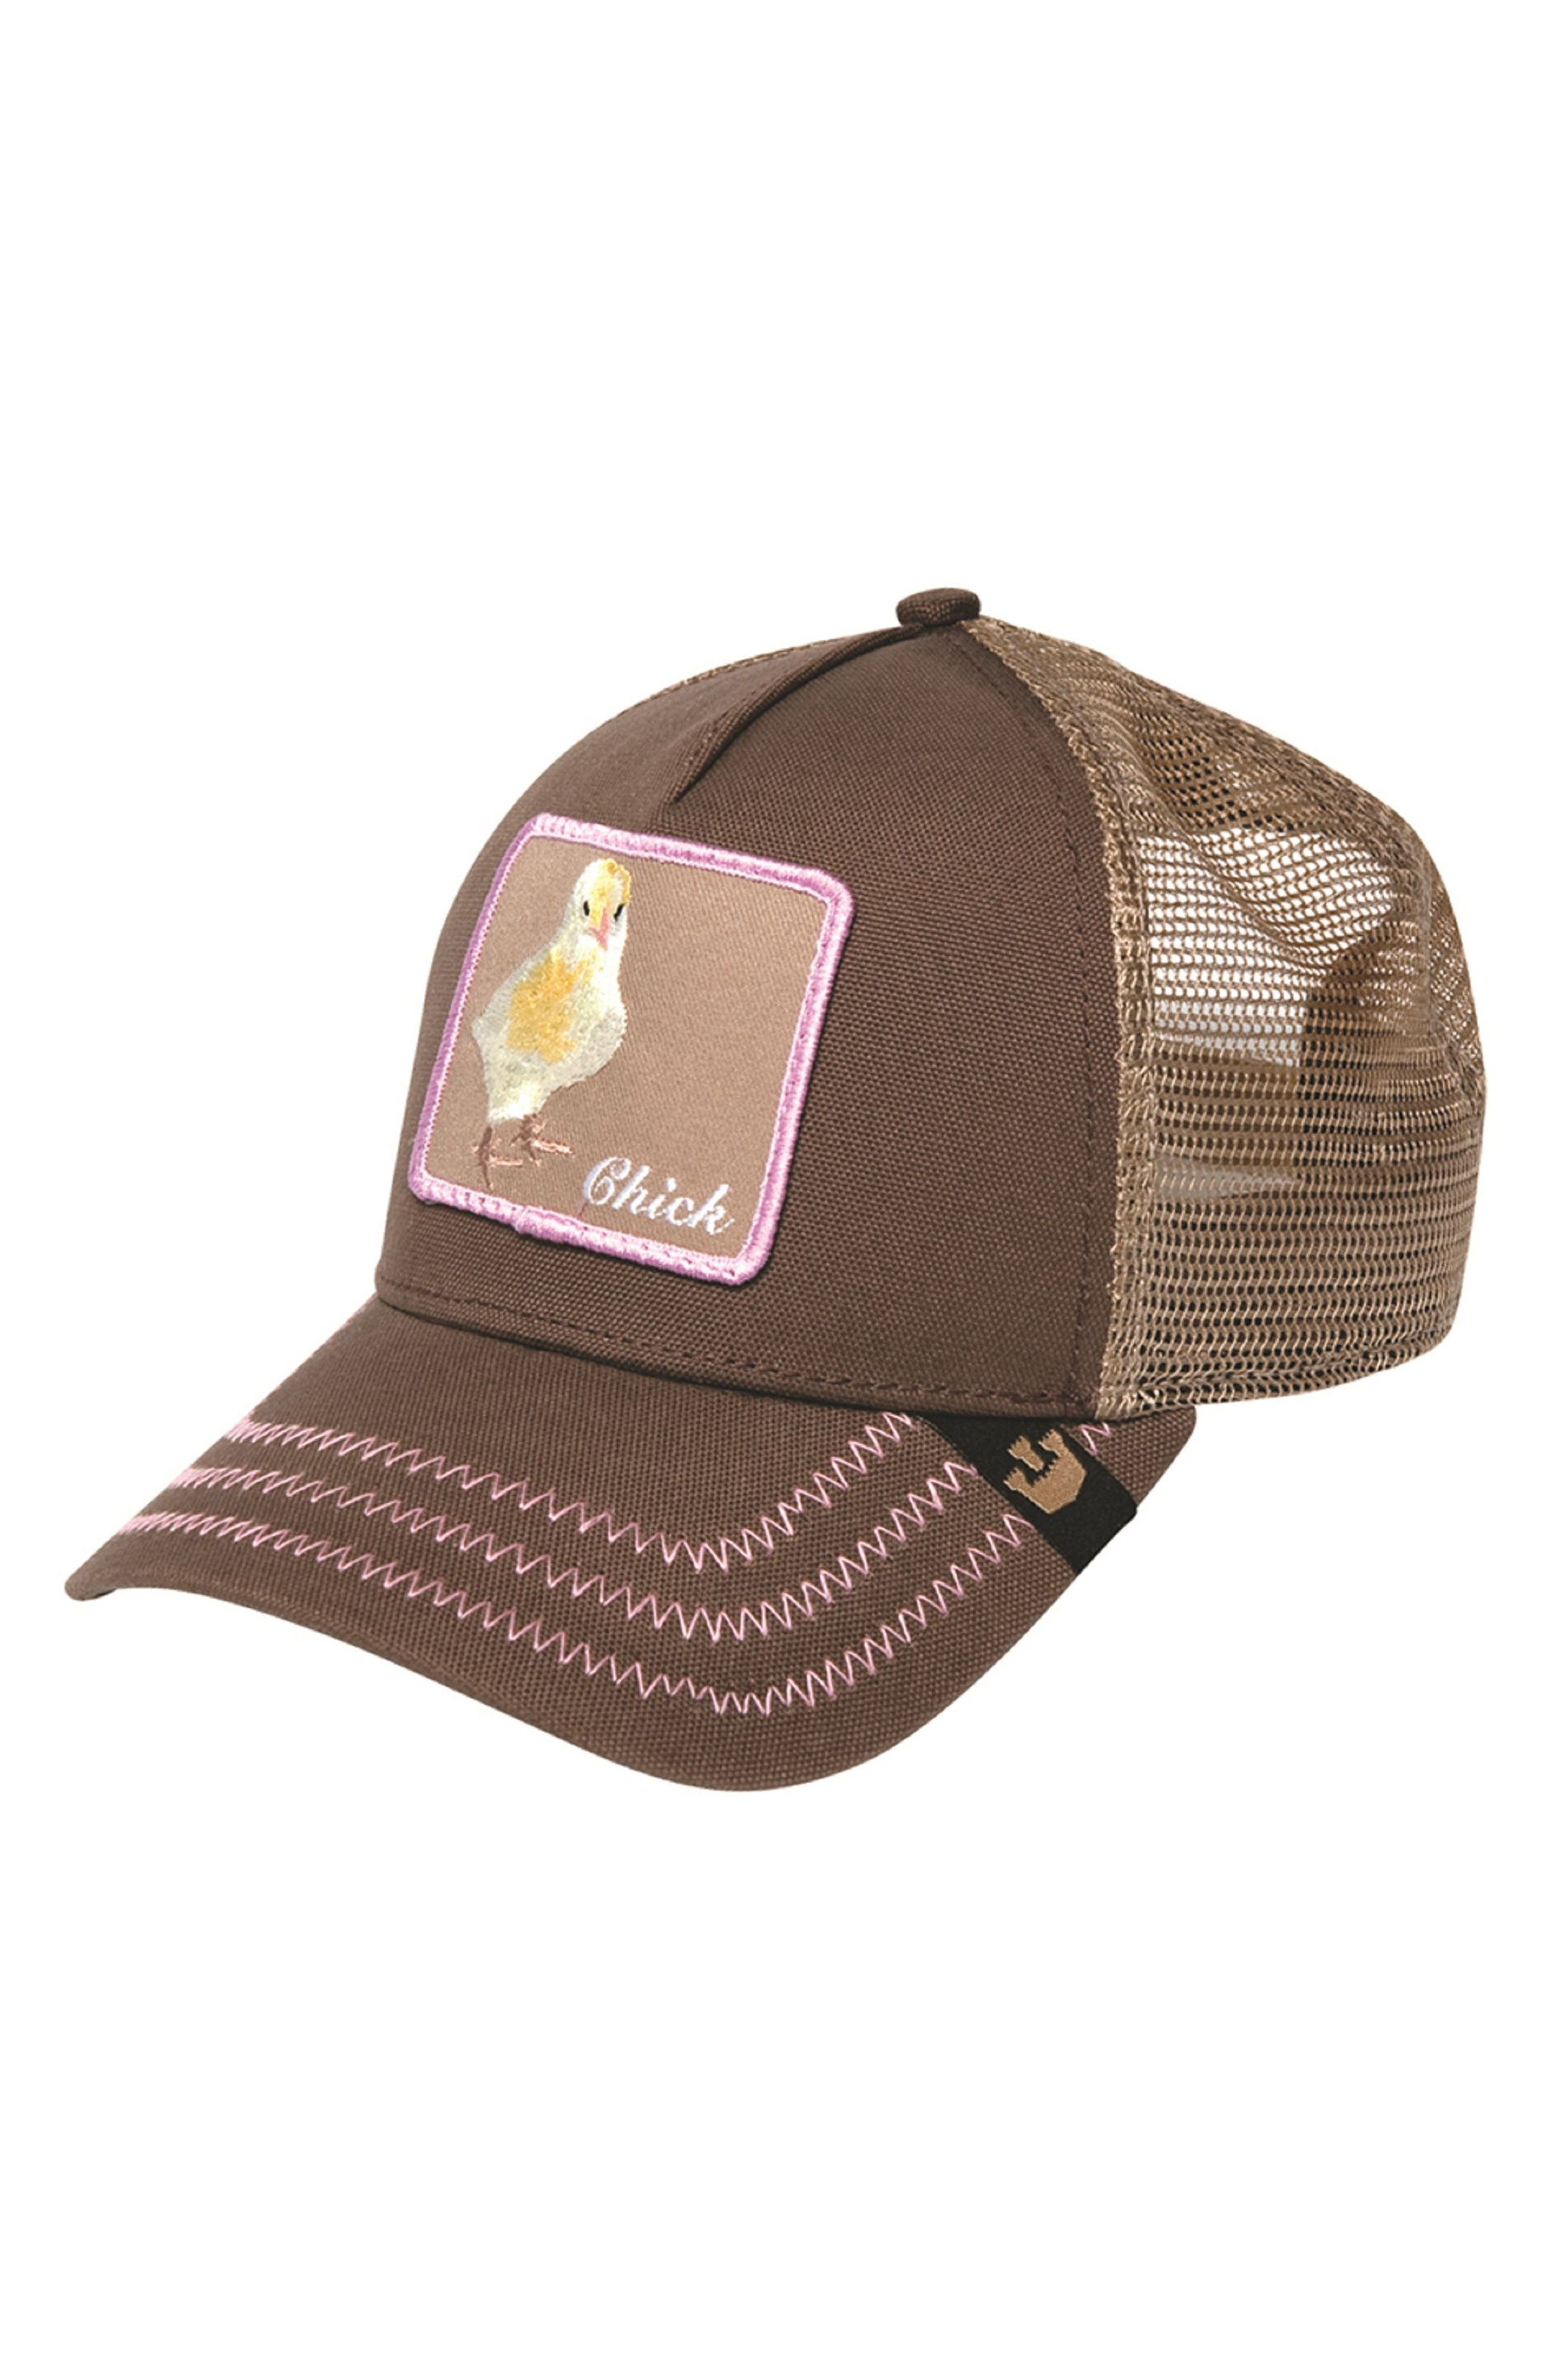 Chicky Boom Trucker Hat,                             Main thumbnail 1, color,                             Brown